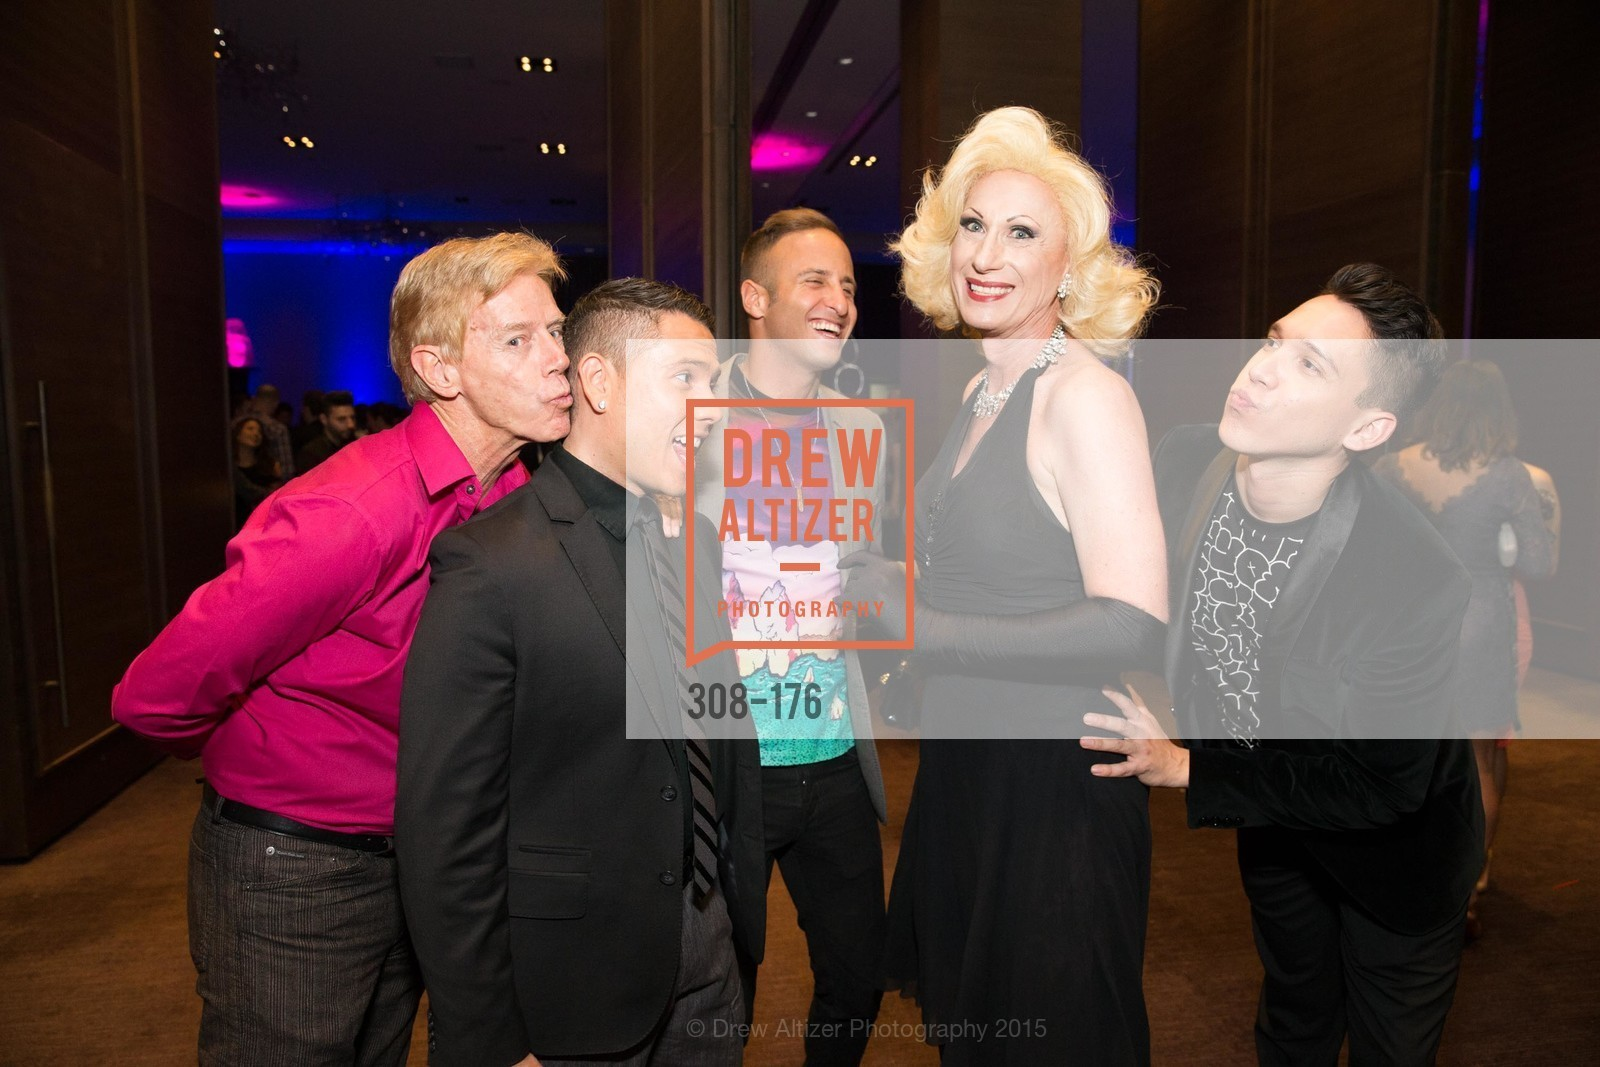 Ken Henderson, Ari Kalsayan, Donna Sachet, Nicholas Gonzalez, VIP Pride Celebration 2015, St. Regis, June 18th, 2015,Drew Altizer, Drew Altizer Photography, full-service agency, private events, San Francisco photographer, photographer california